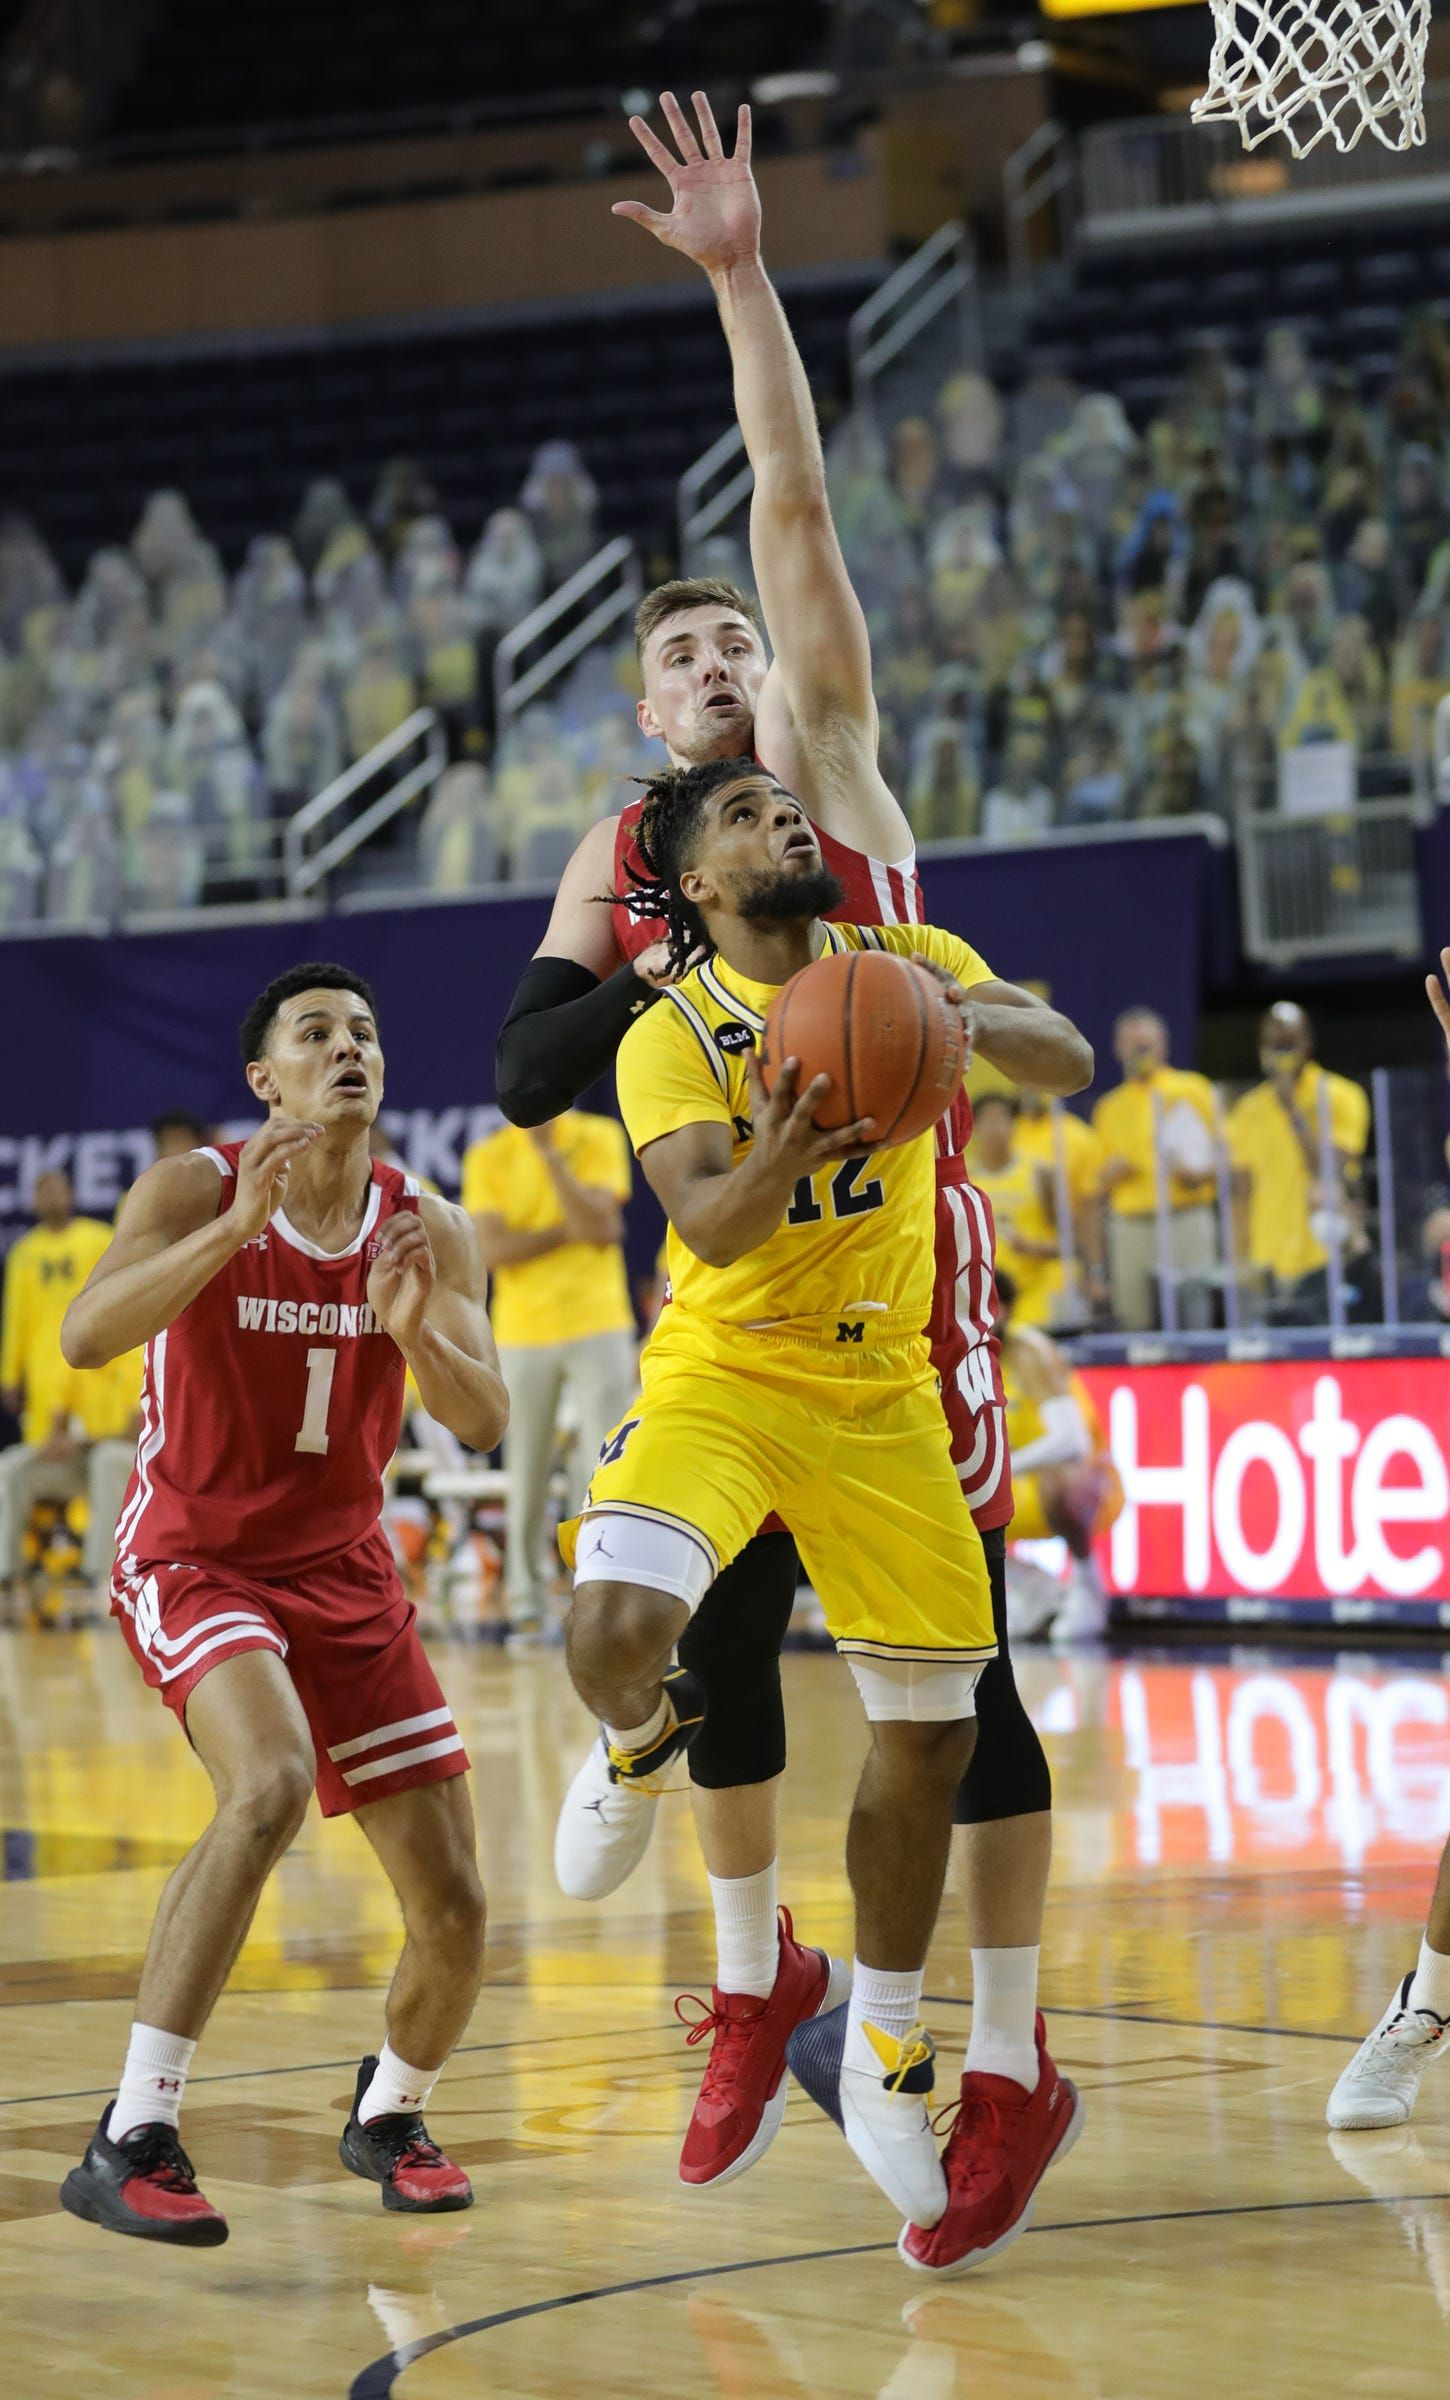 michigan-basketball-vs.-wisconsin-badgers:-live-updates-from-wolverines'-return-to-court